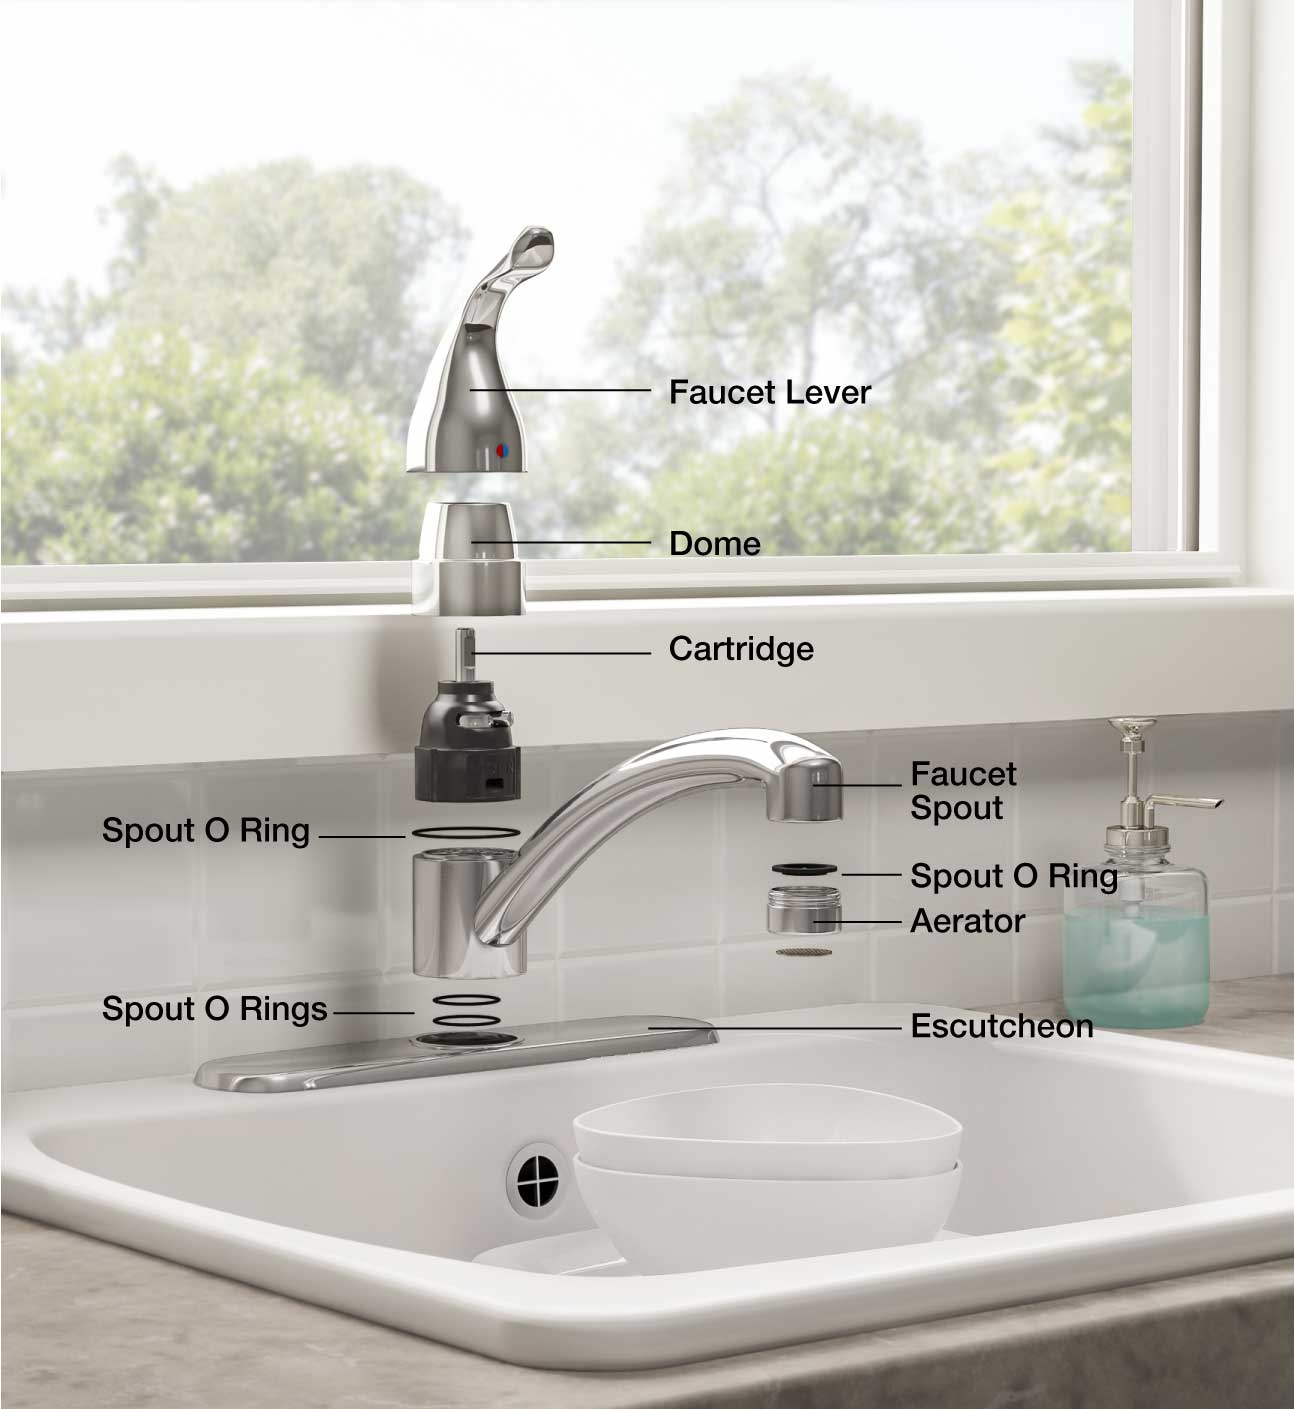 Kitchen faucet parts